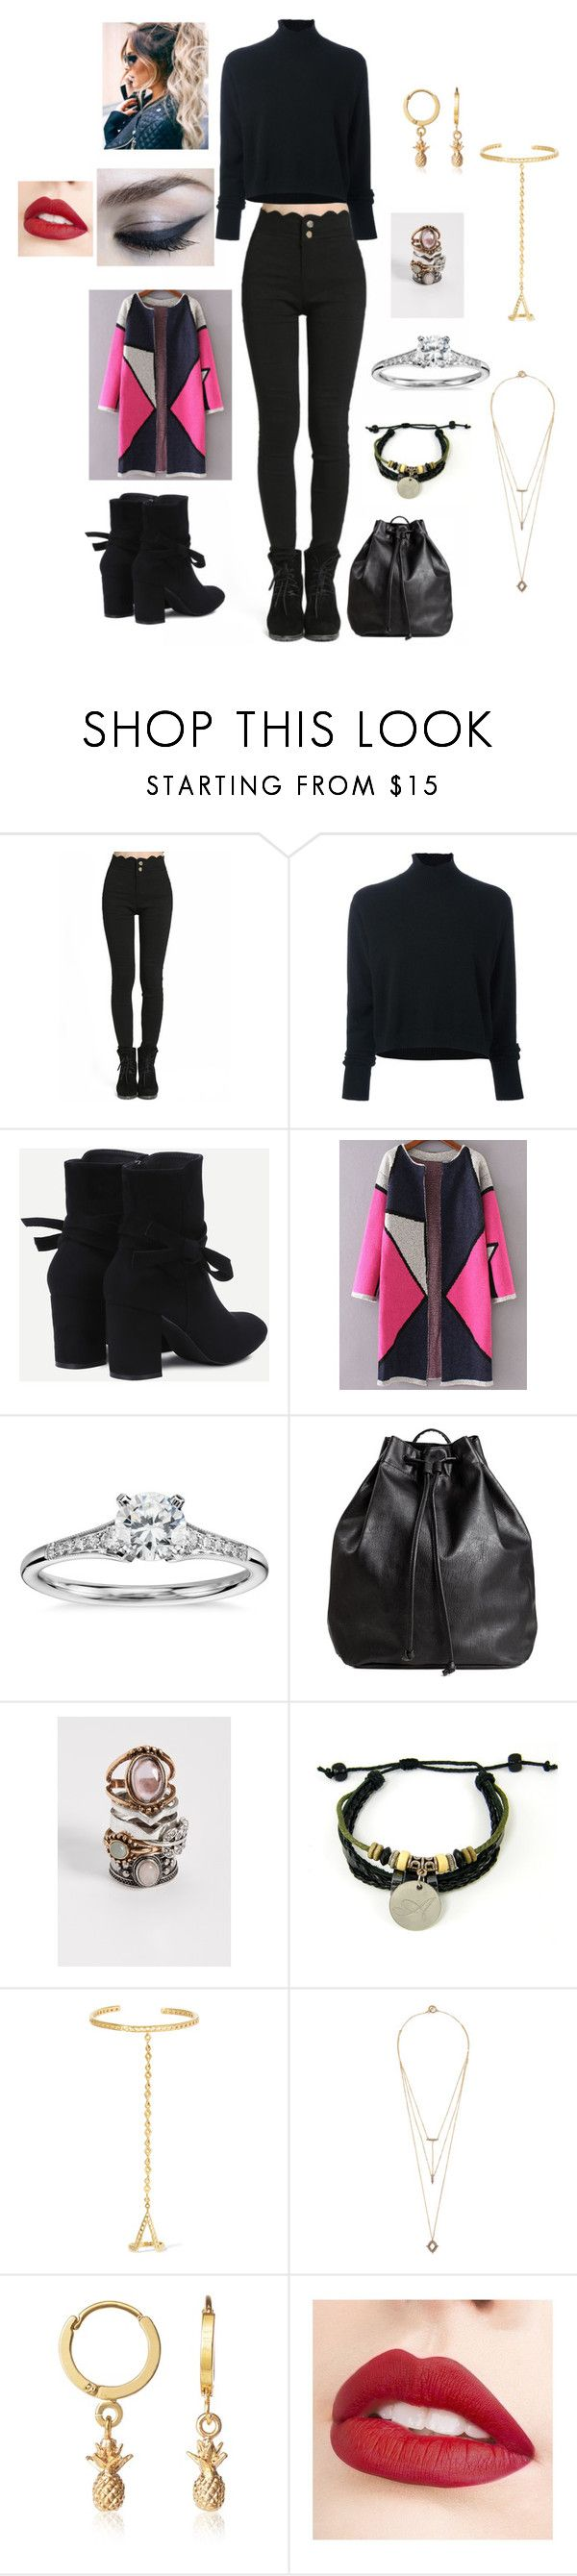 """Başlıksız #4228"" by tubaserdem ❤ liked on Polyvore featuring Le Kasha, WithChic, Blue Nile, H&M, maurices, Arme De L'Amour, Noir Jewelry, C.J.M and Jouer"